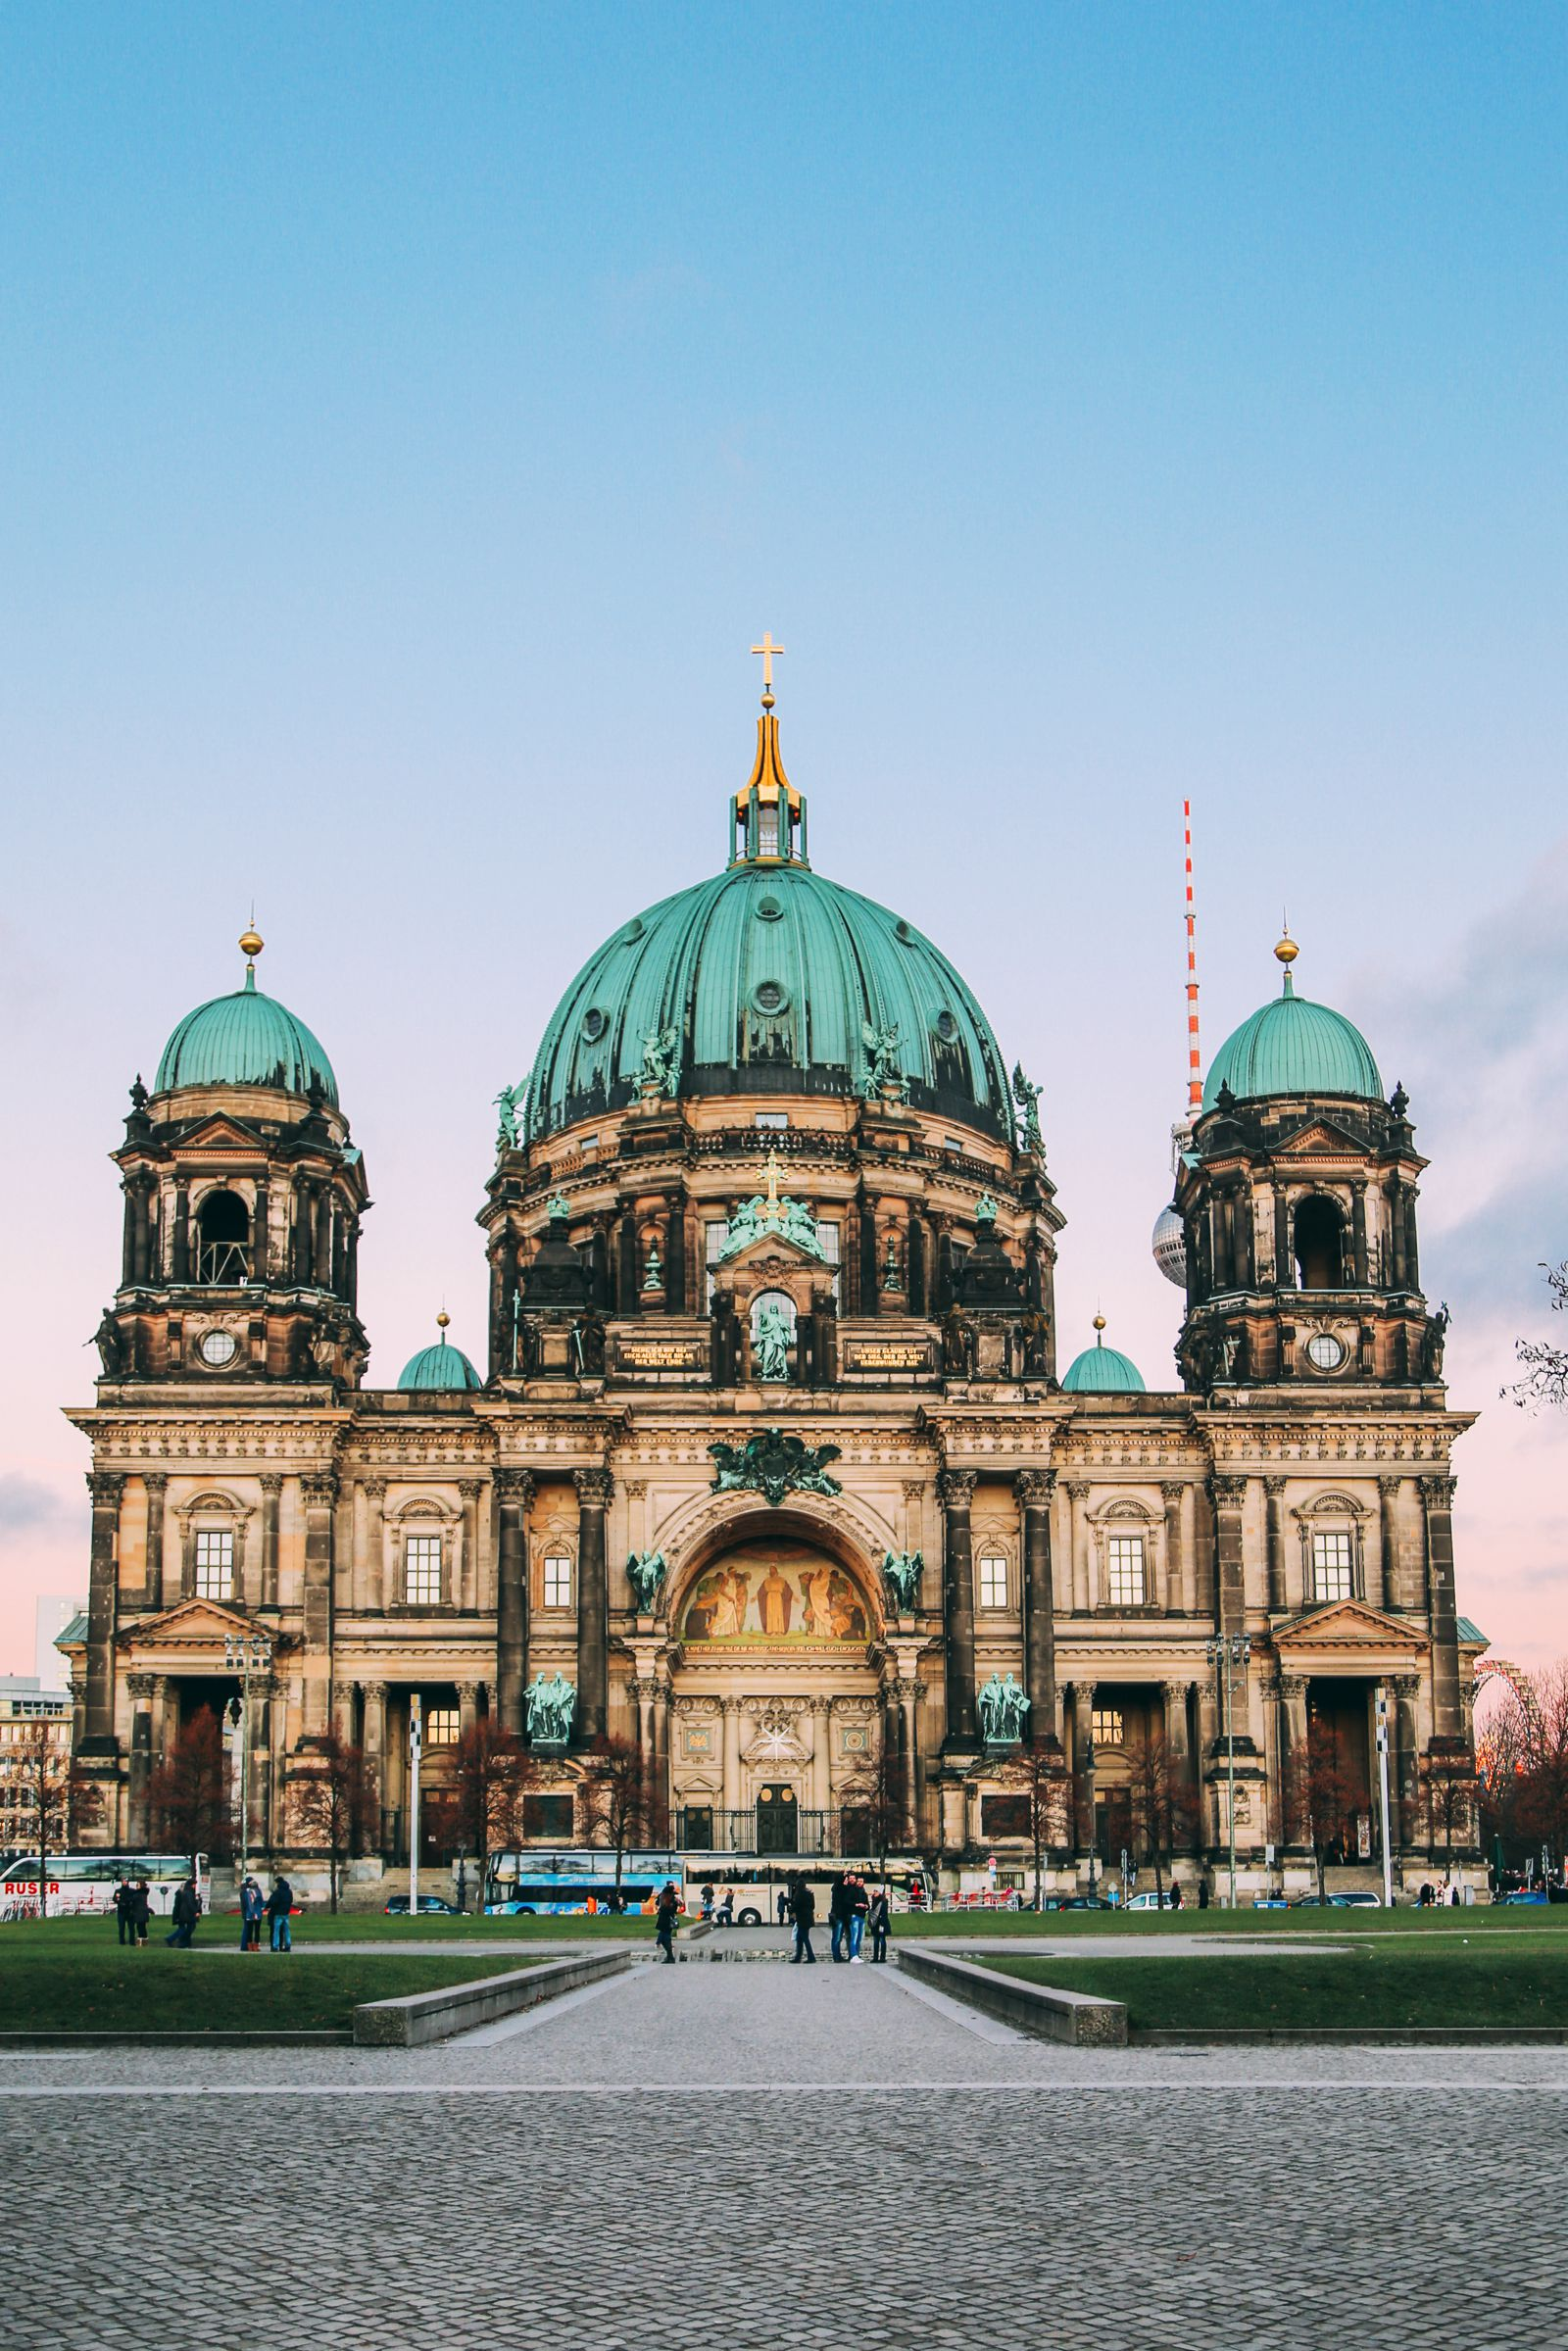 17 Things You Need To Do On A Visit To Berlin  Germany   Hand     12 Must See Sights To See On A First Time Visit To Berlin  14